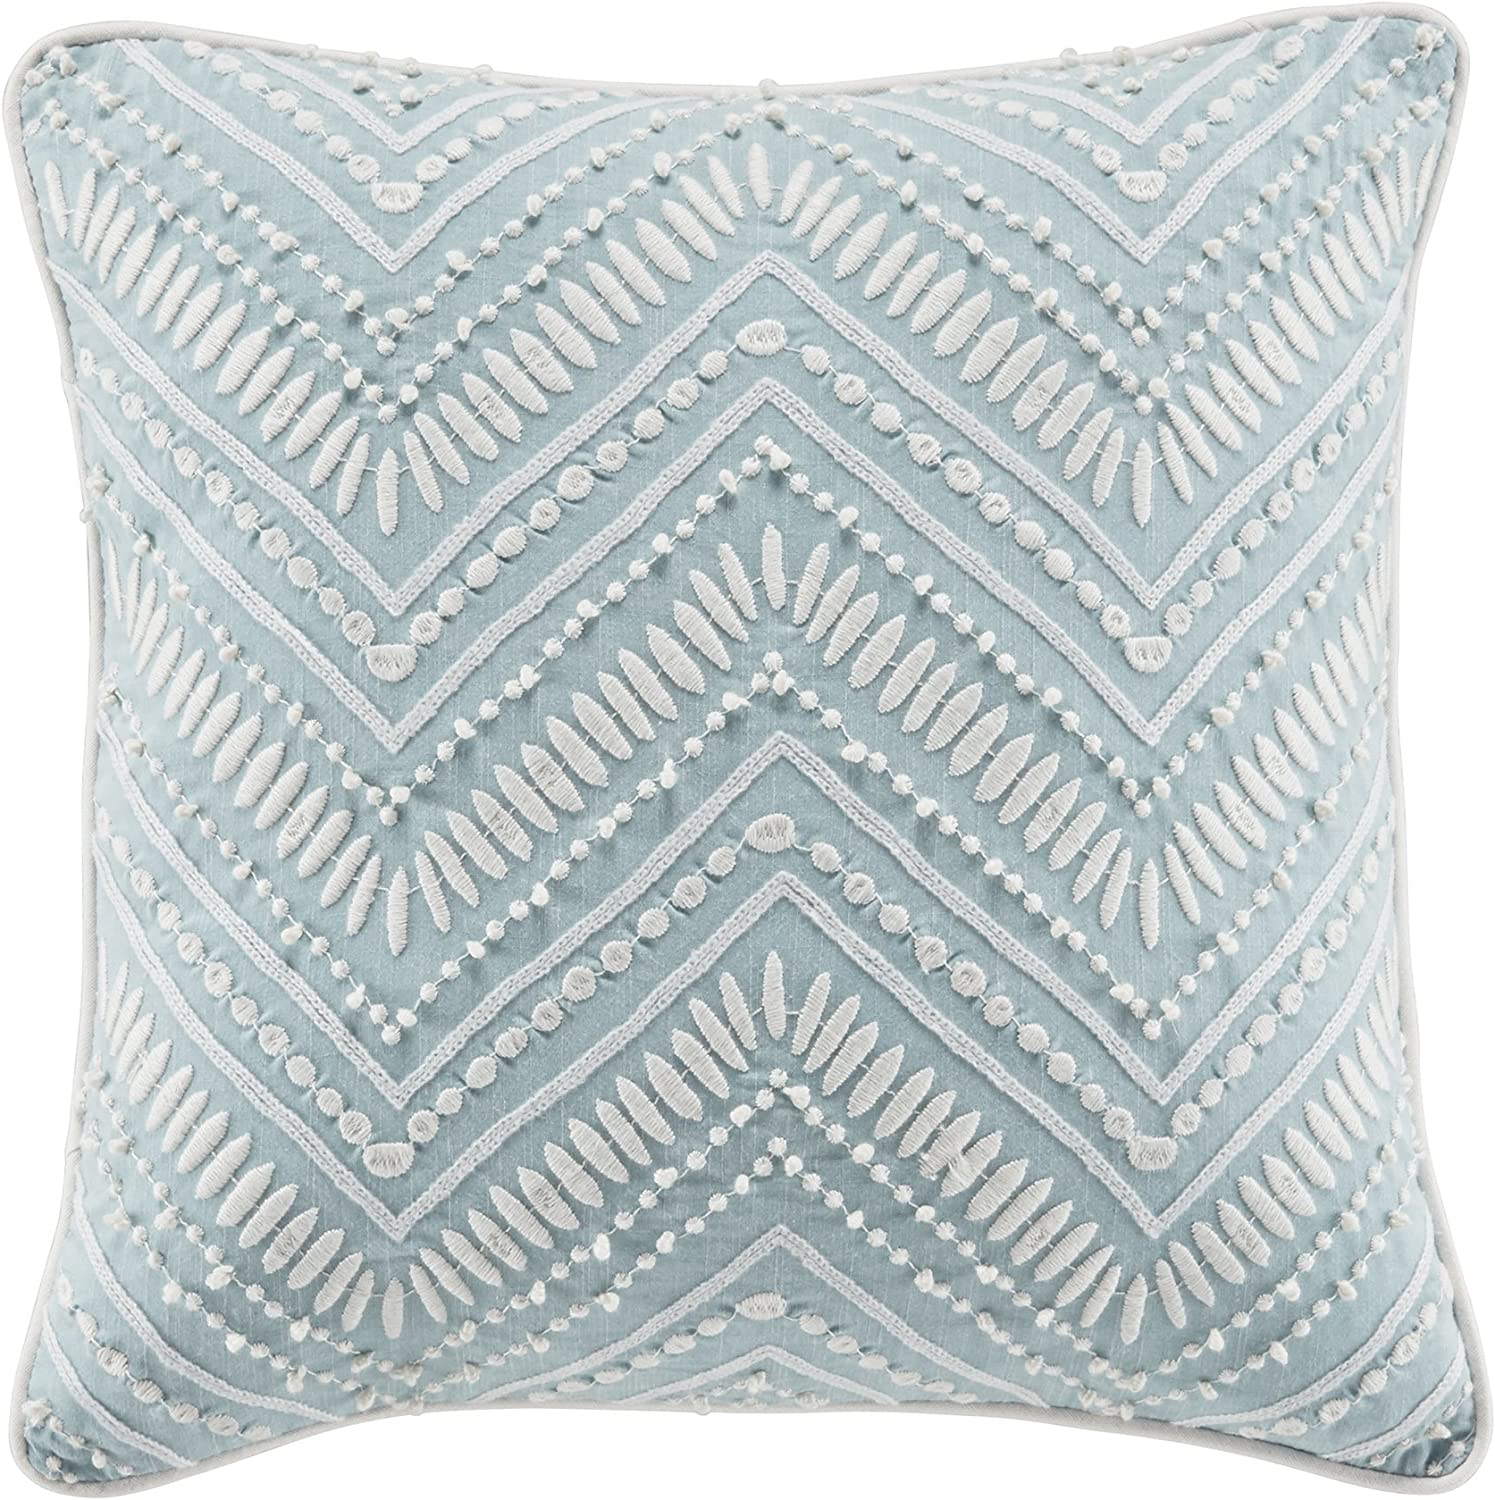 Croscill Willa Decorative Pillow Soft Aqua Home Kitchen